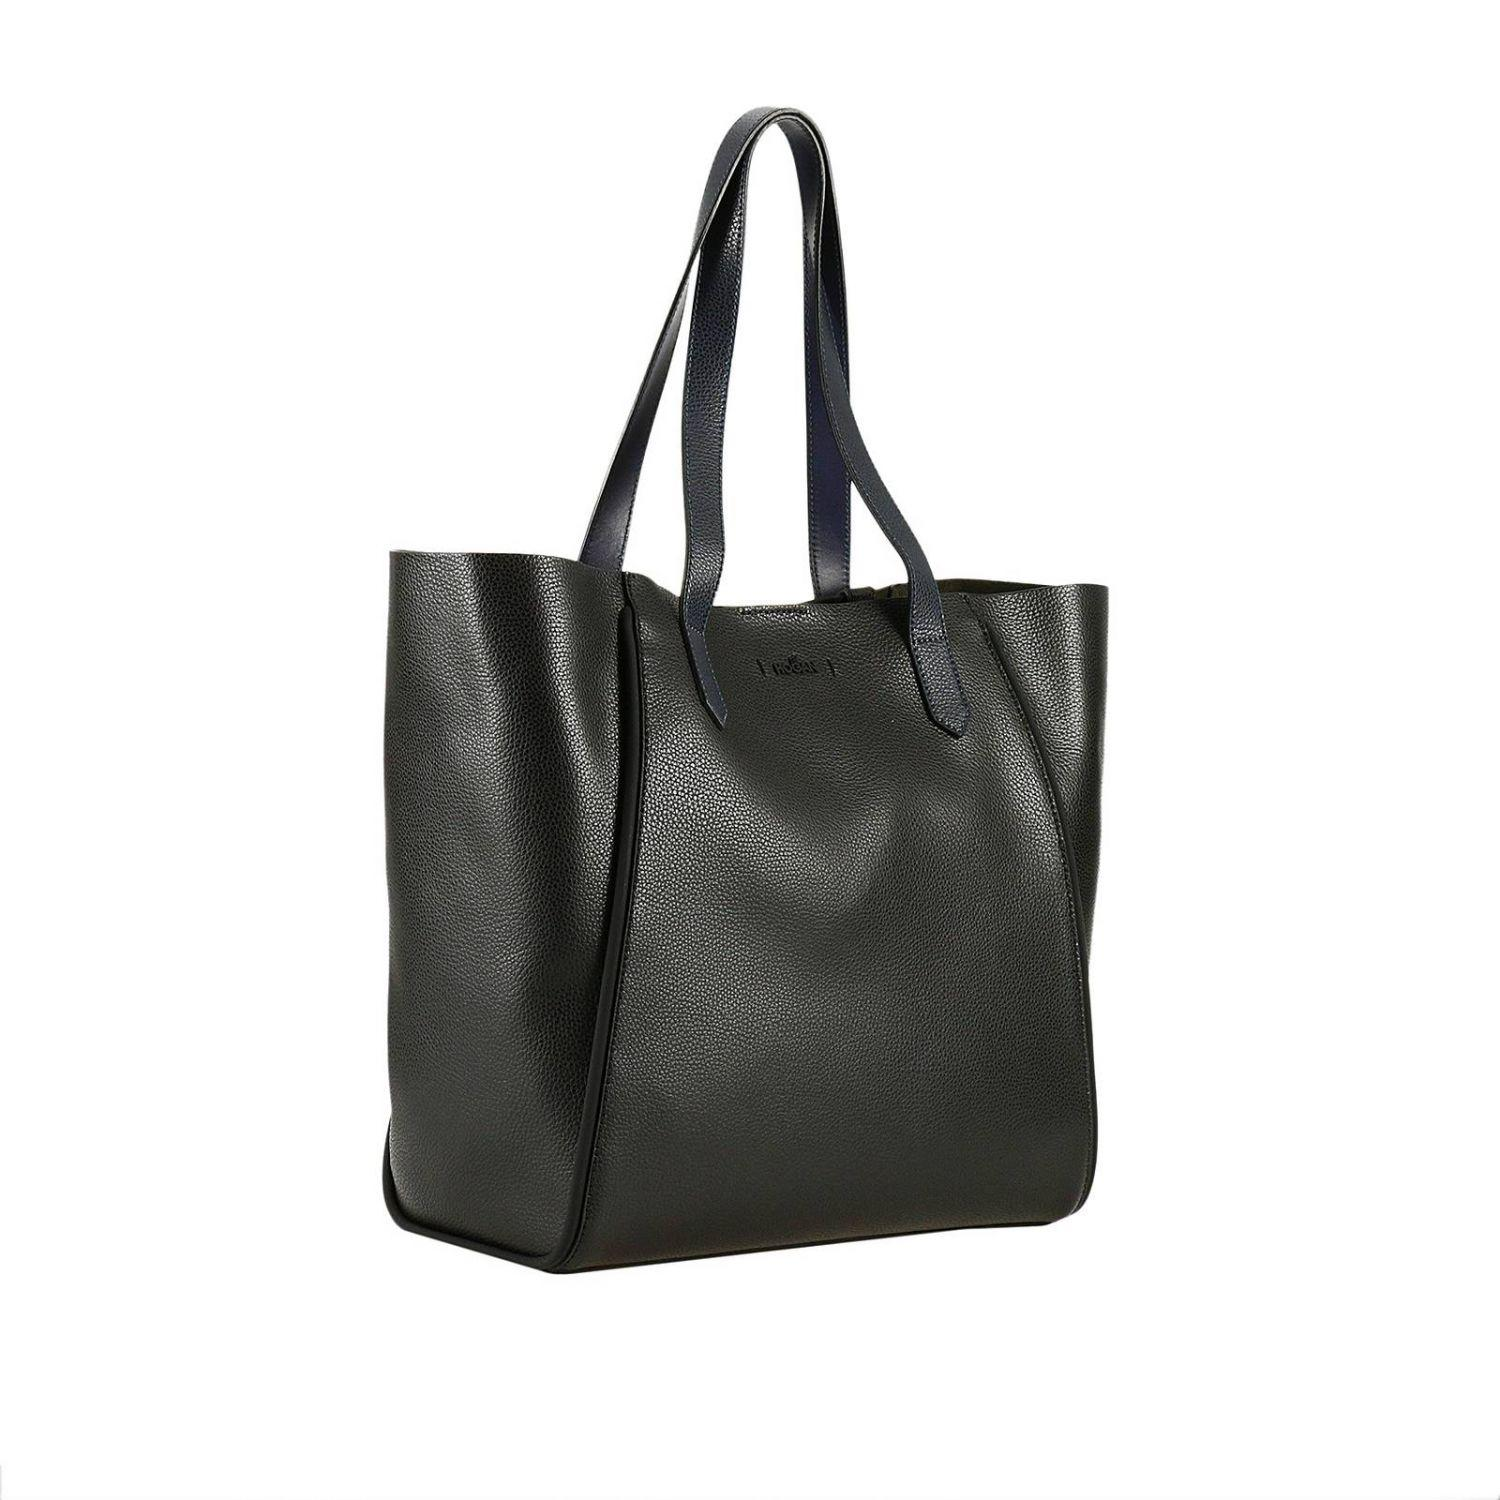 Hogan Shoulder Bag Women in Black - Lyst 757279eb8988c